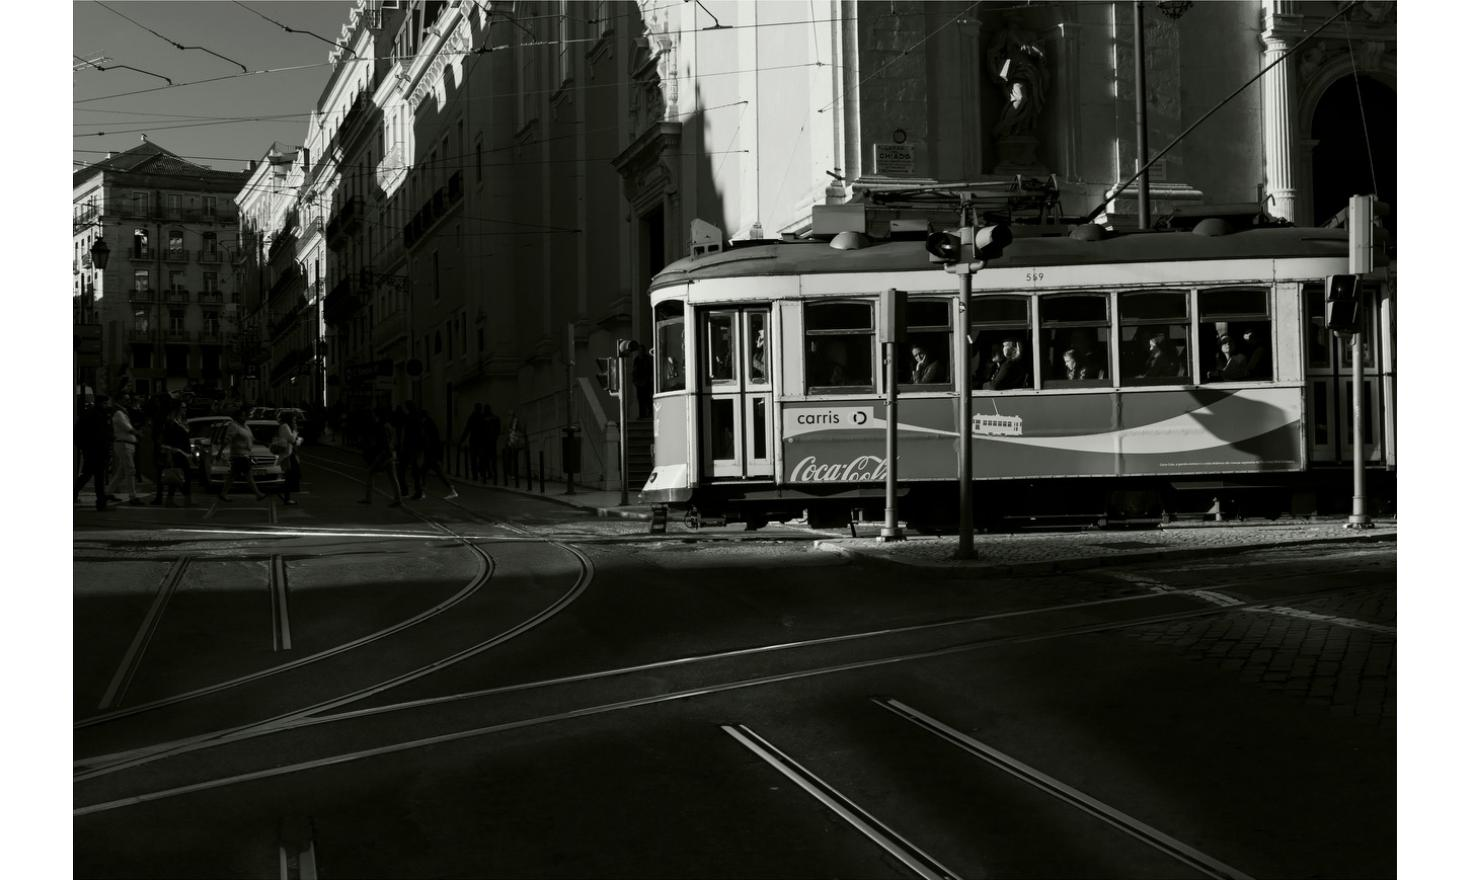 Tramway, Lisbon. April 2015